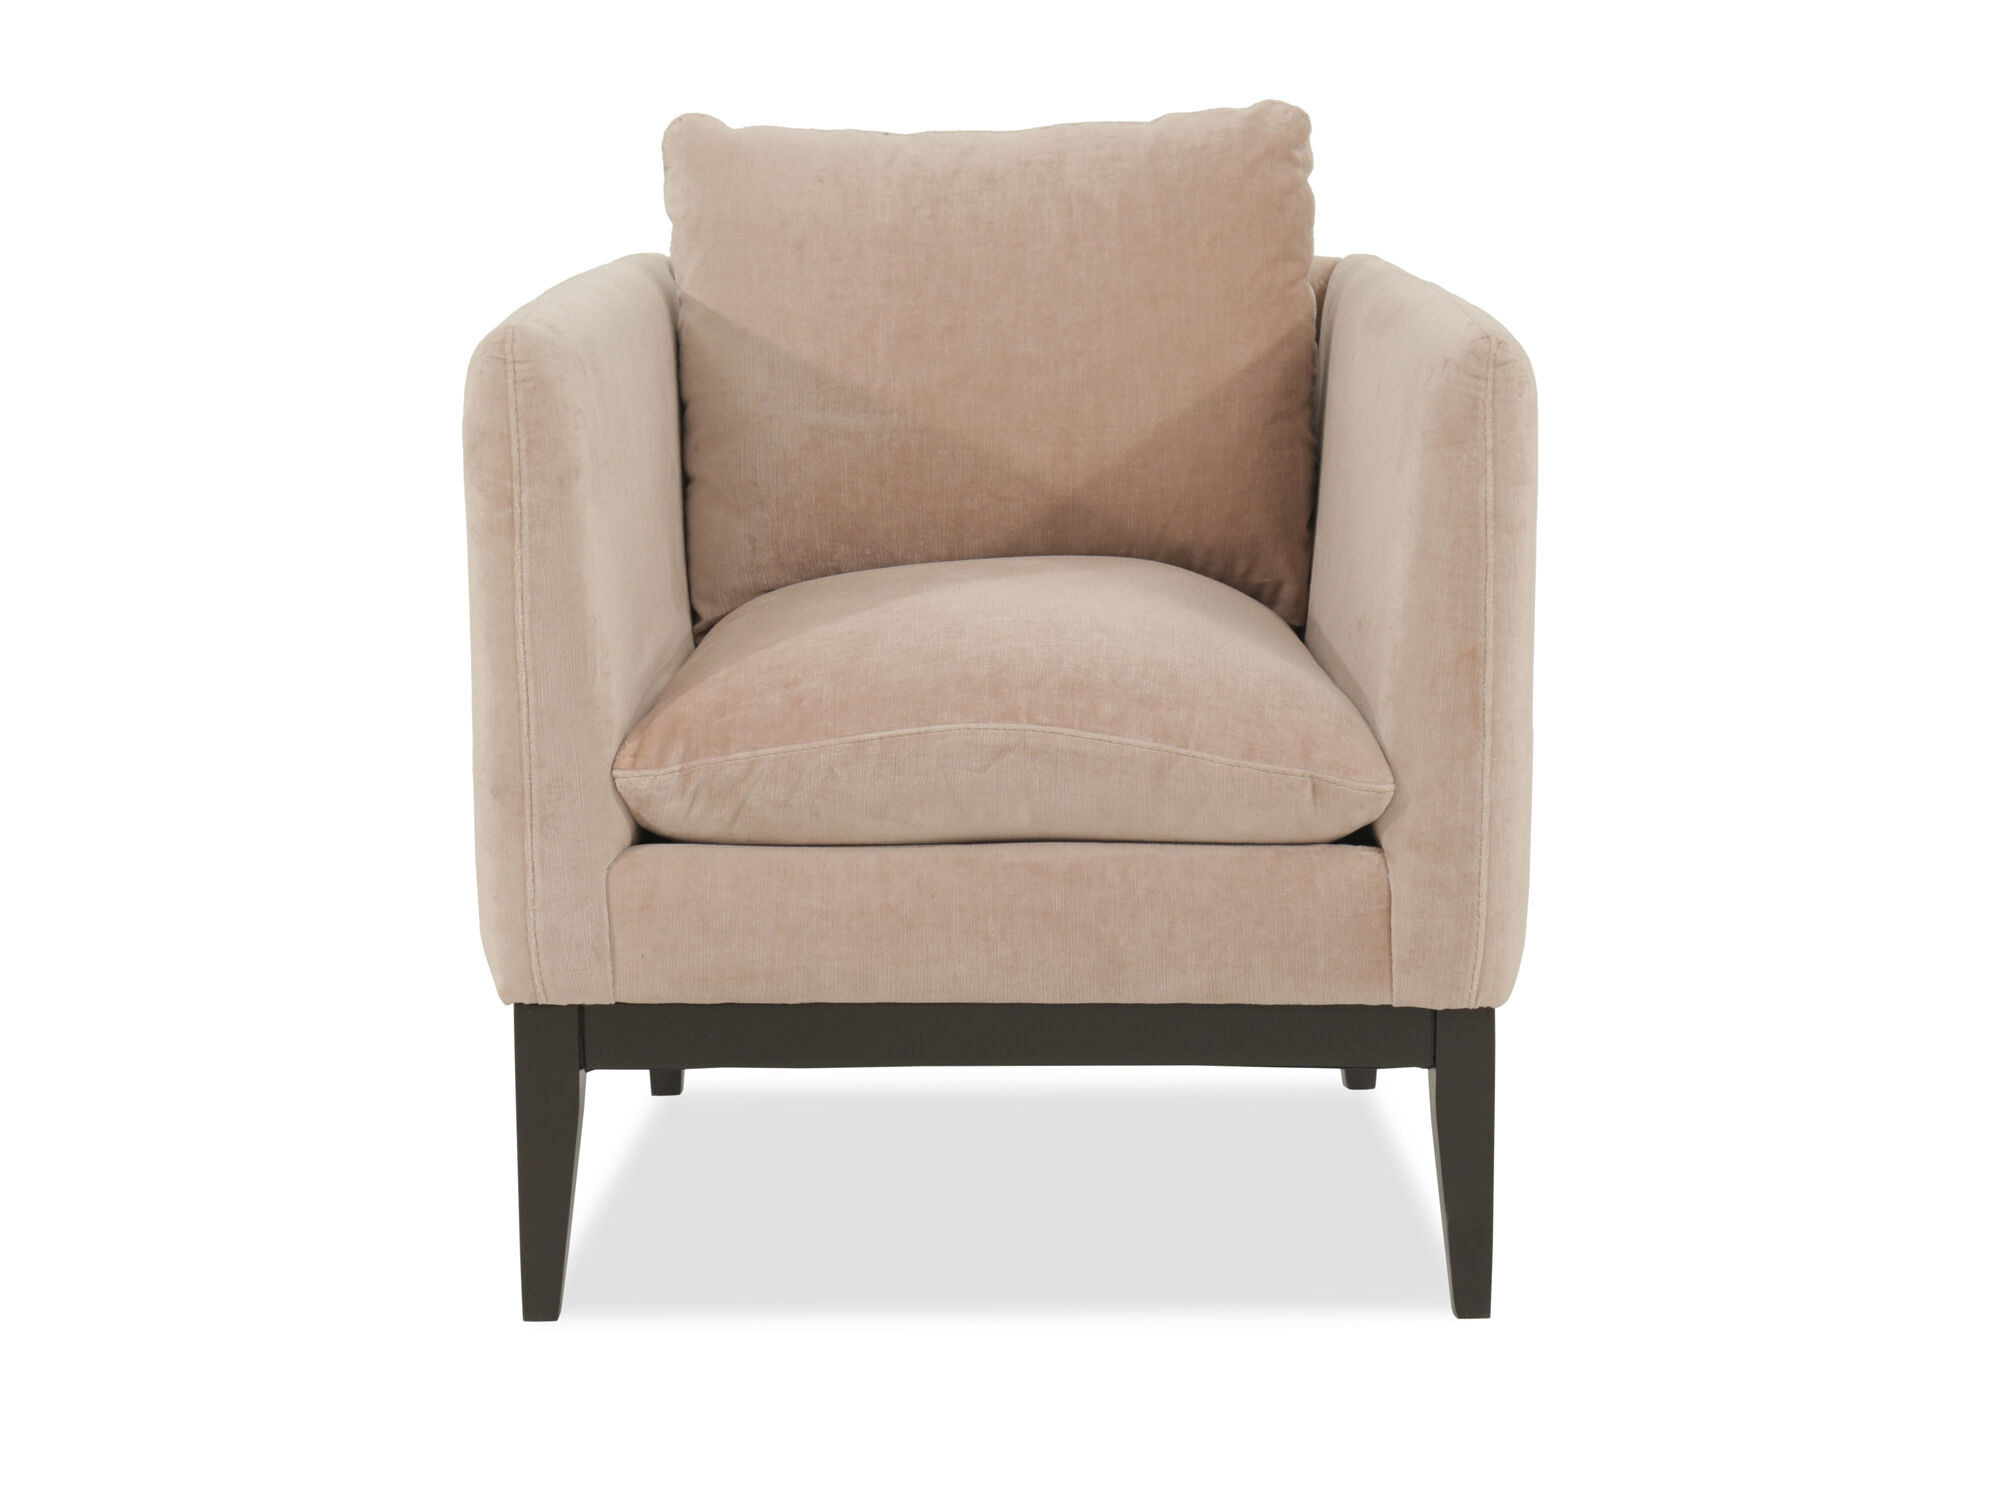 LowProfile Contemporary 32 Chair in Beige  Mathis